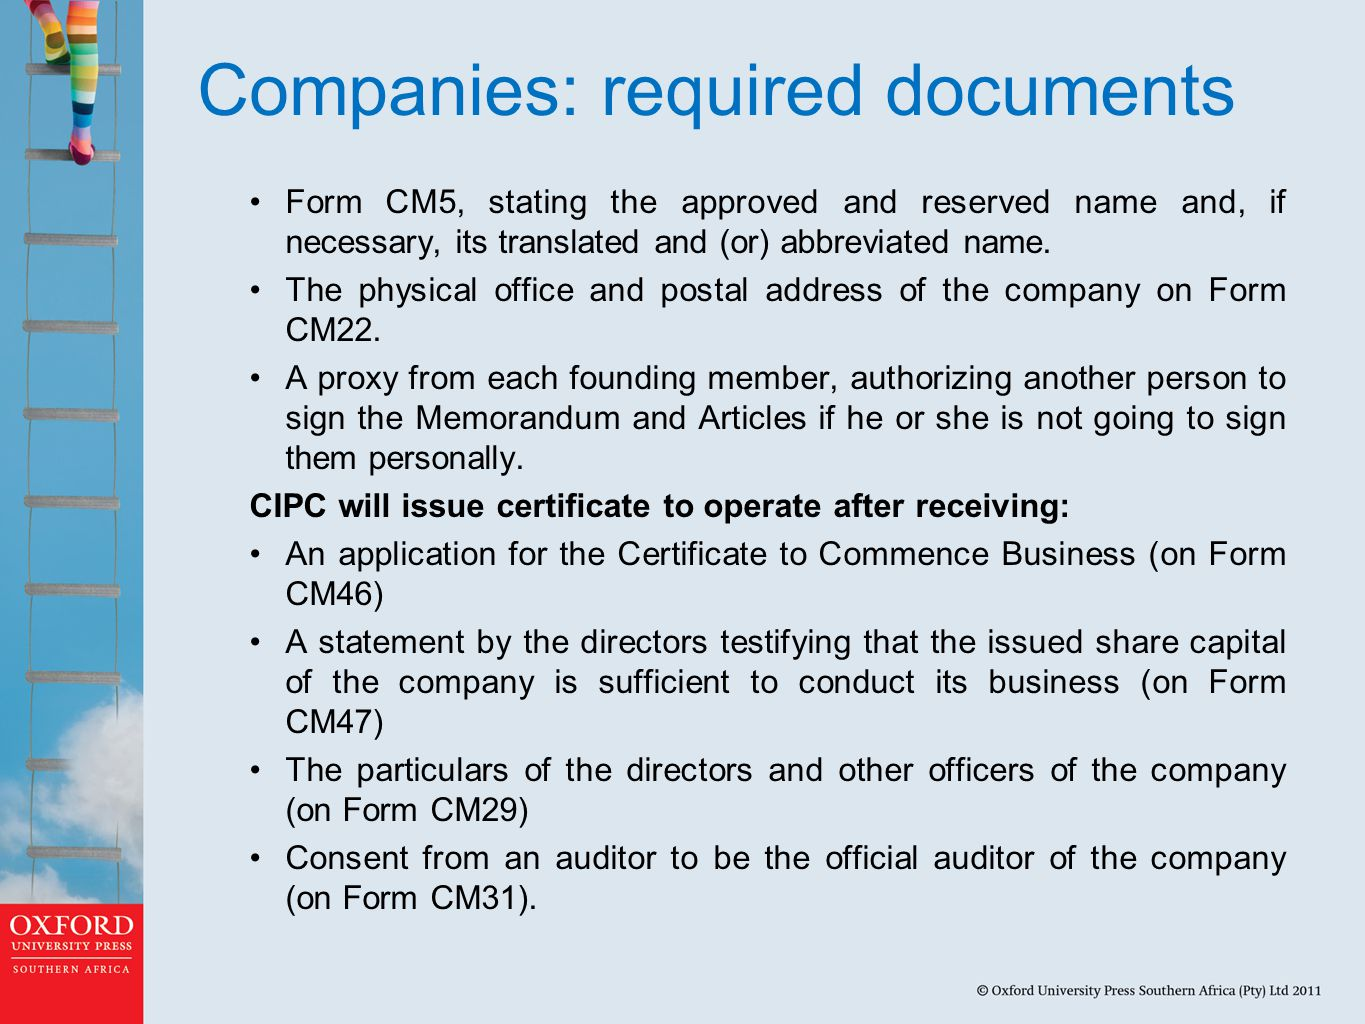 Companies: required documents